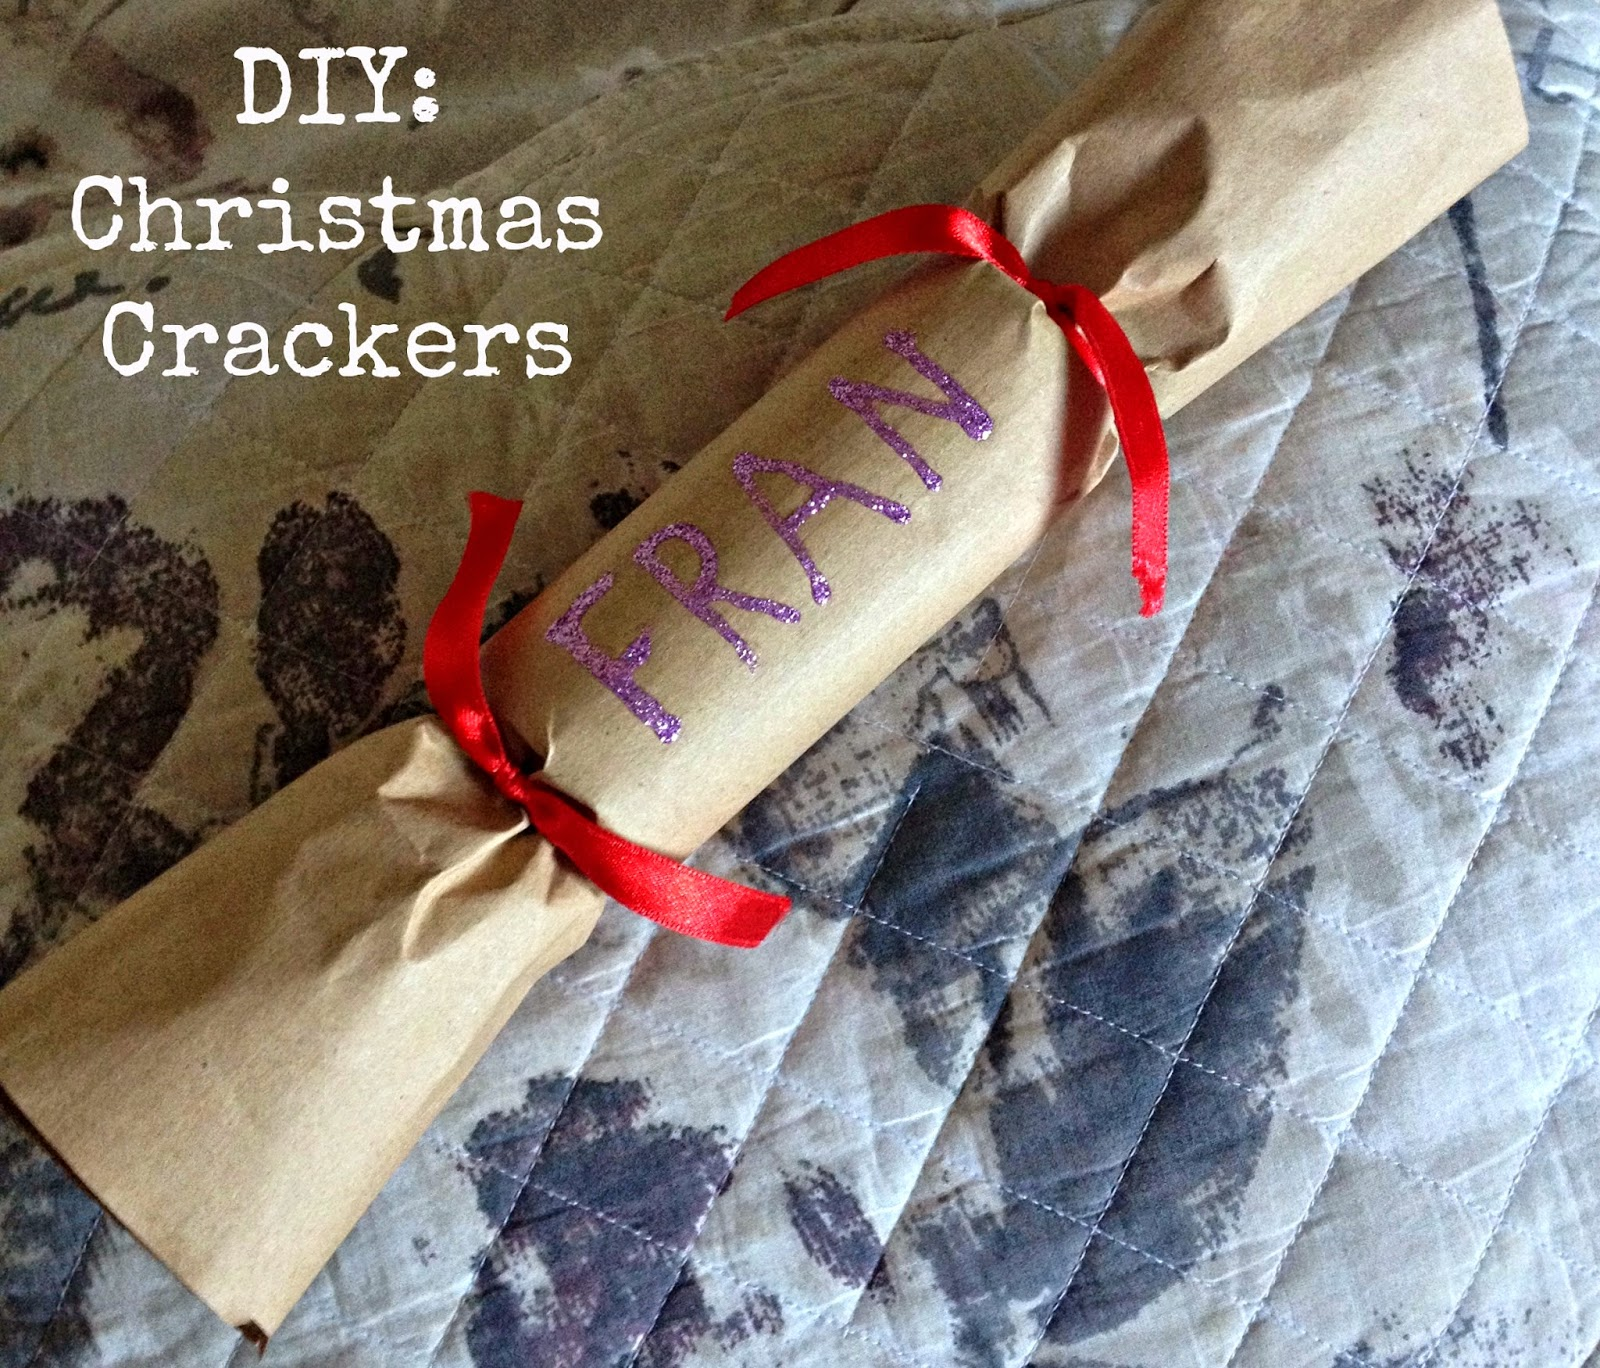 http://emandhanxo.blogspot.co.uk/2014/12/diy-christmas-crackers.html